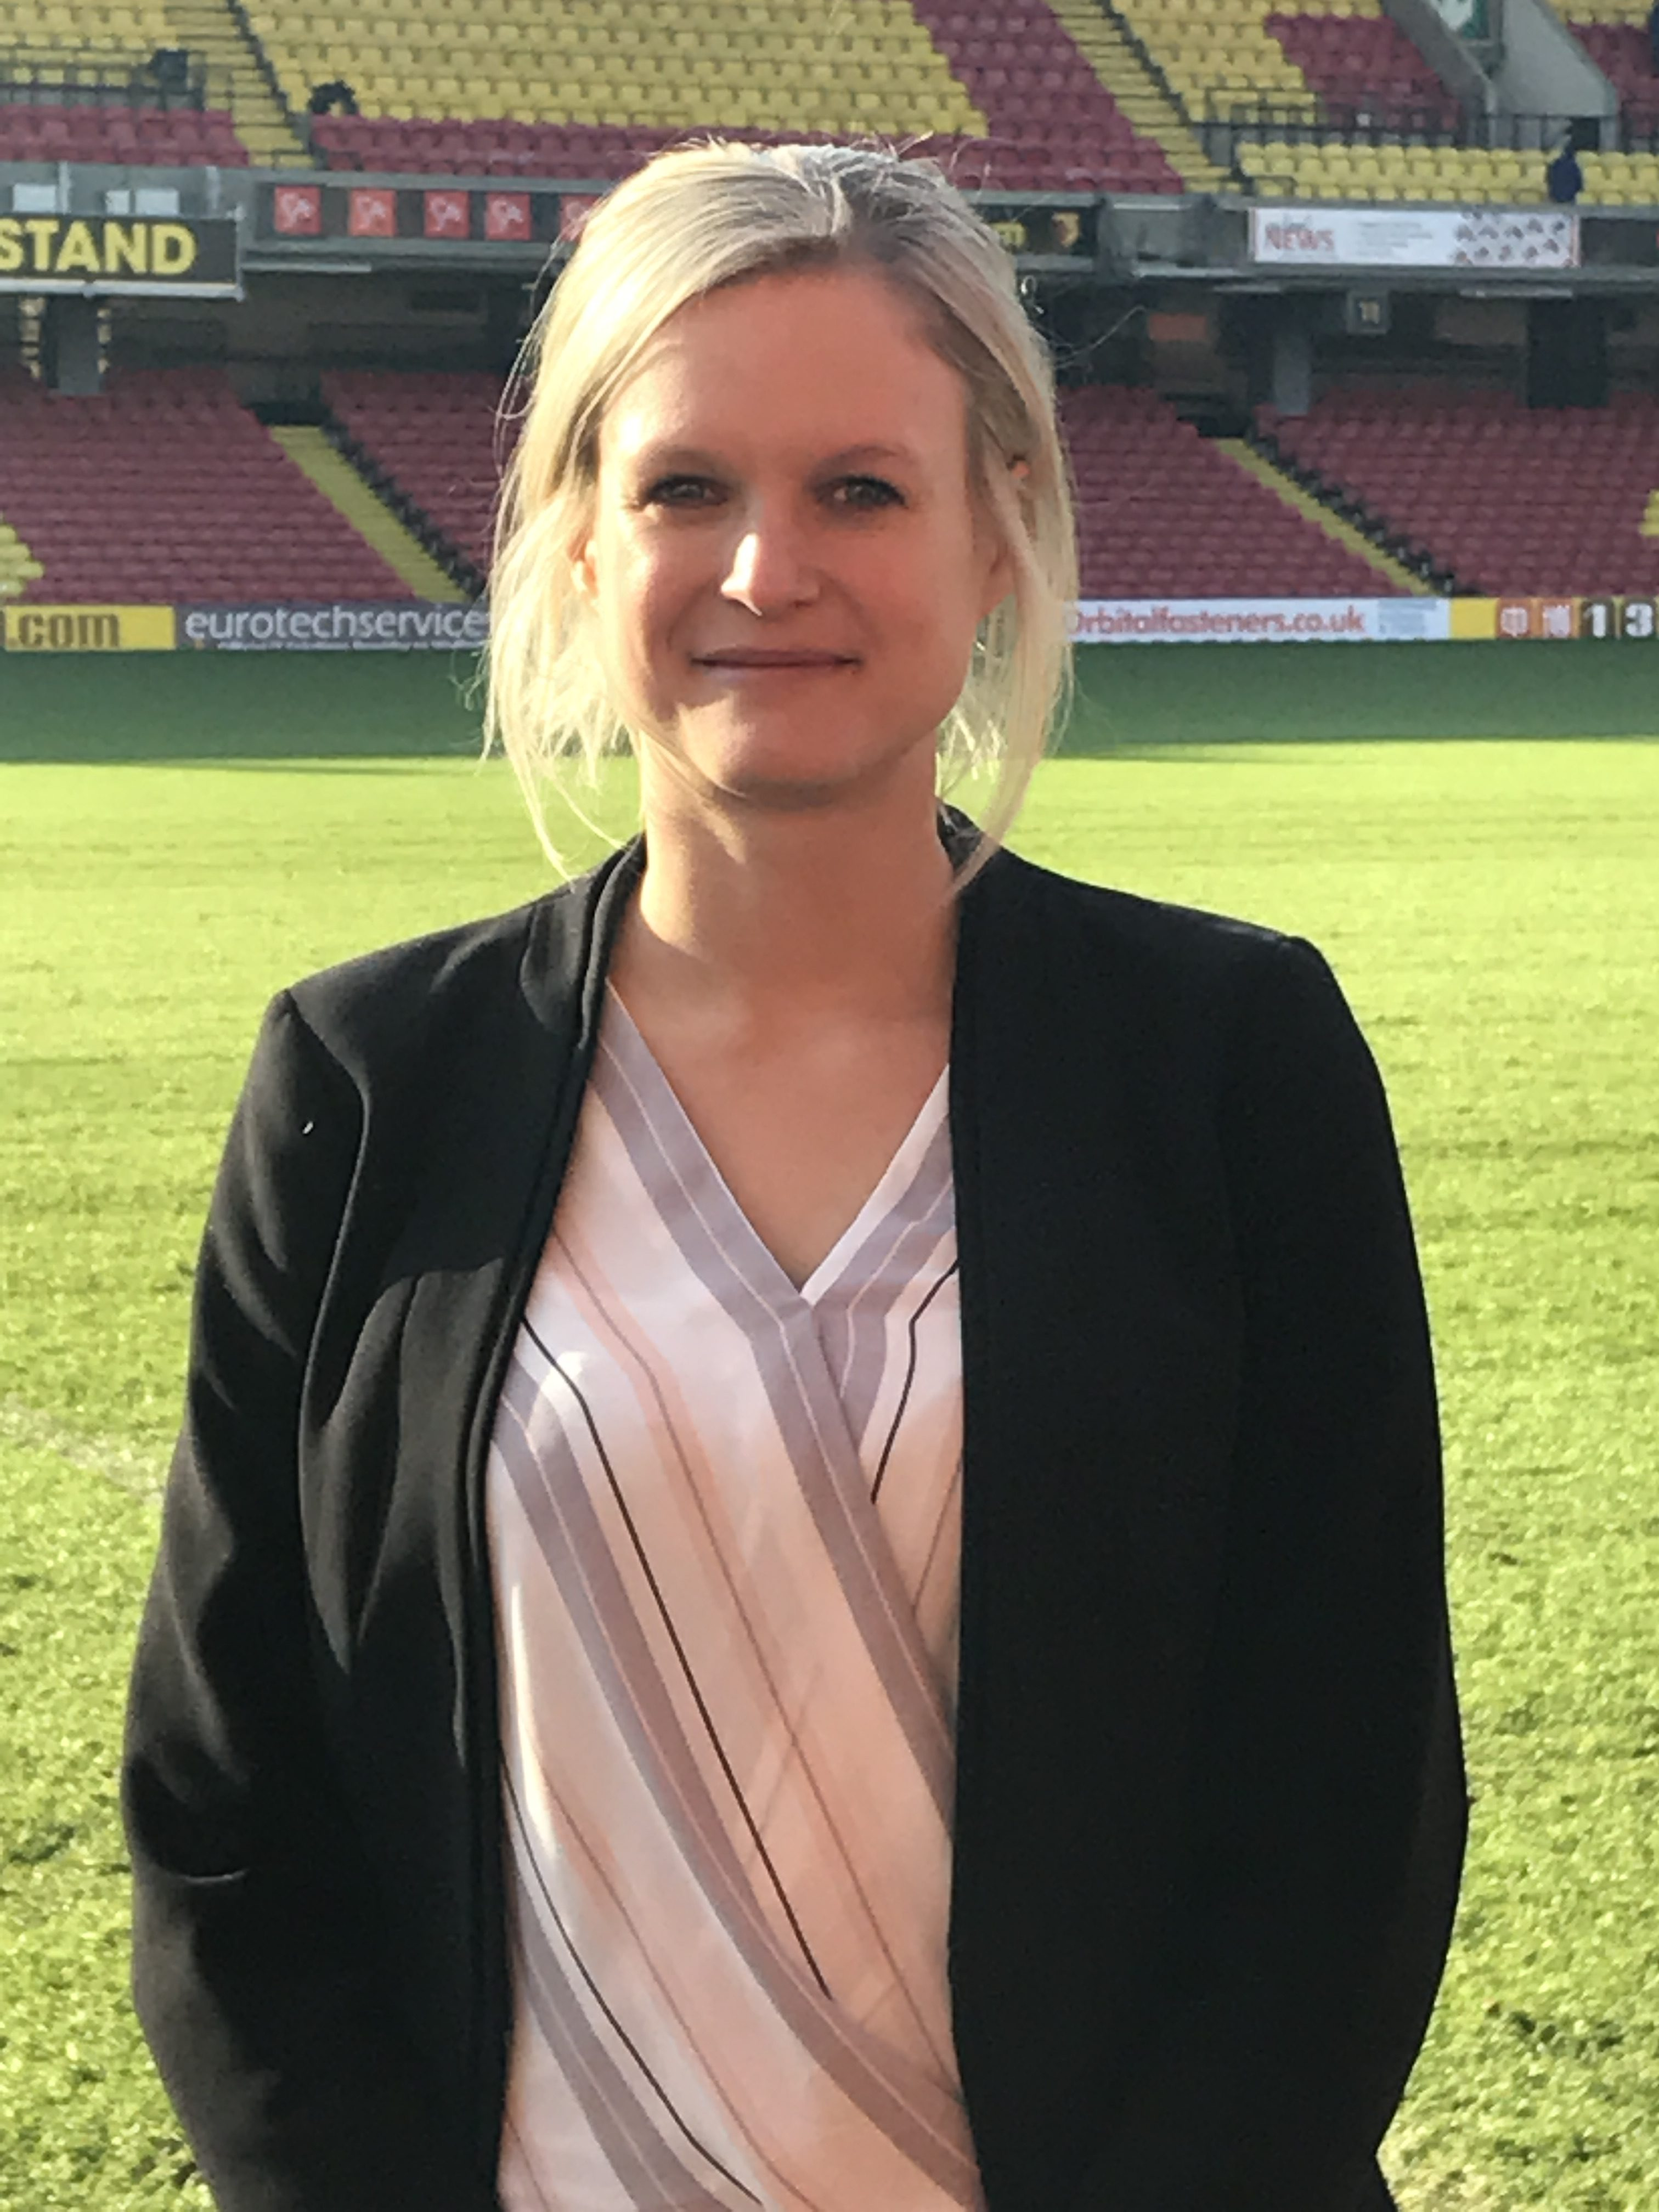 Watford FC Appointment Emelie Lundberg